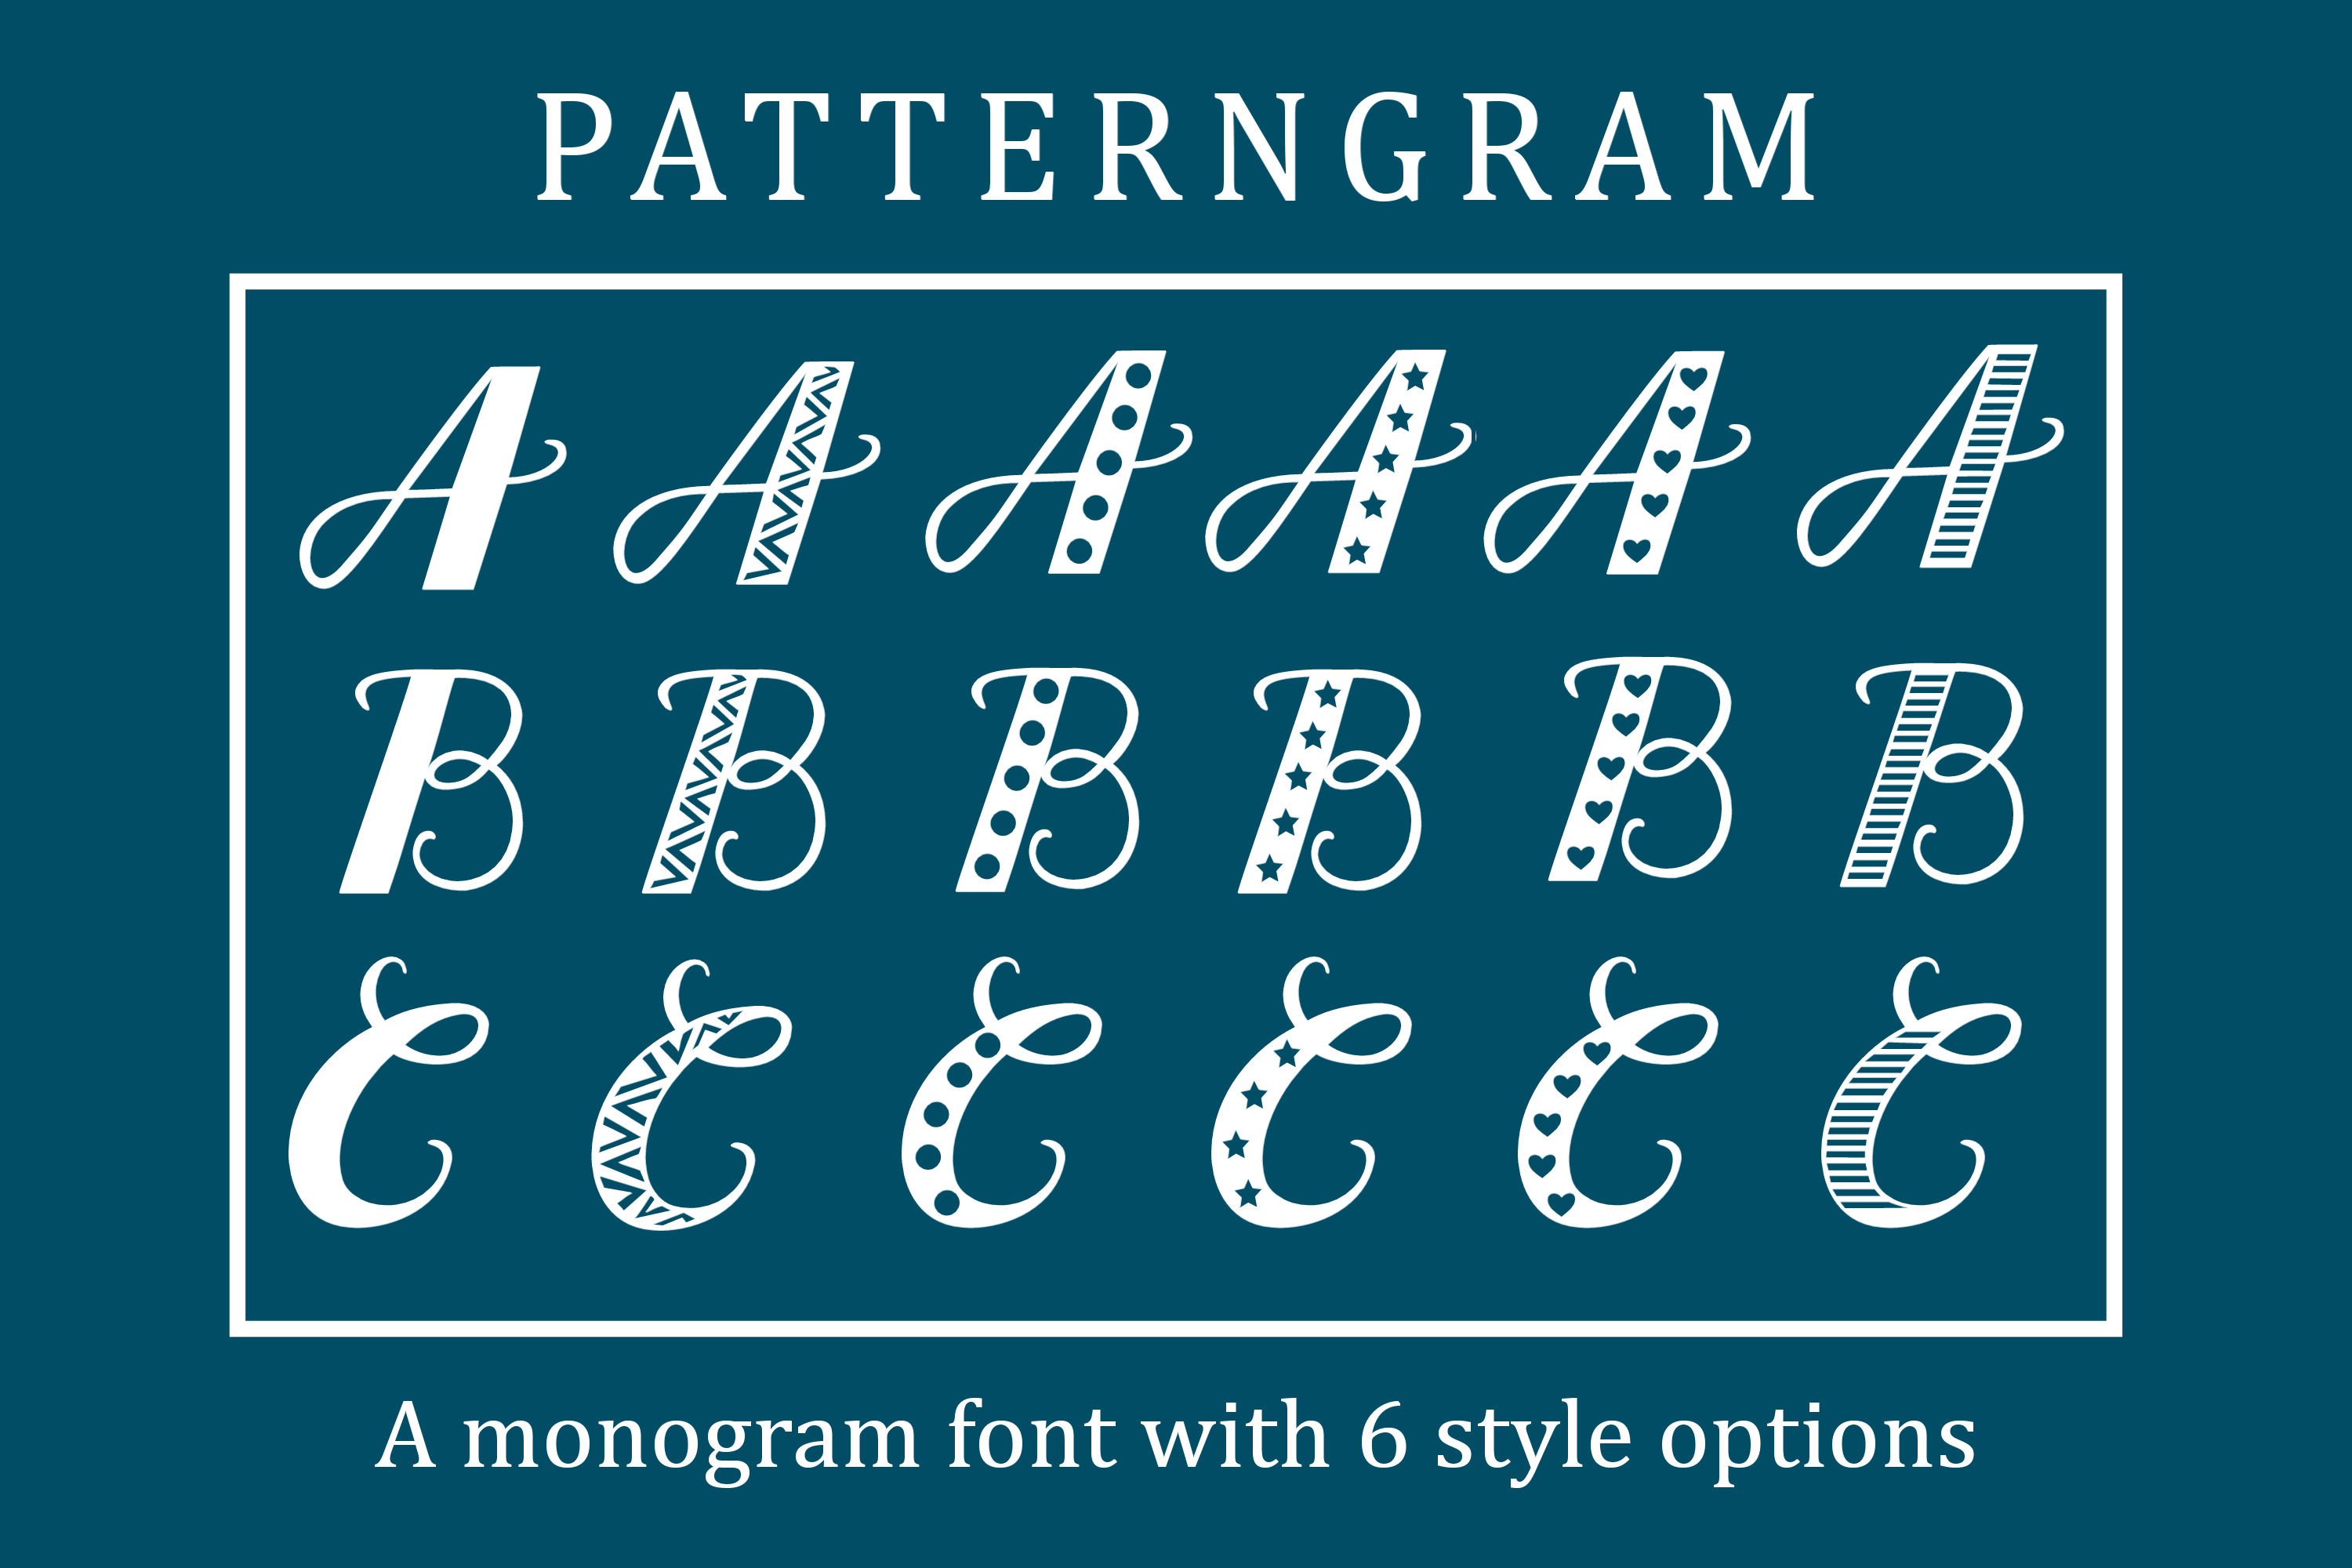 Patterngram - Monogram font with 6 style options example image 1